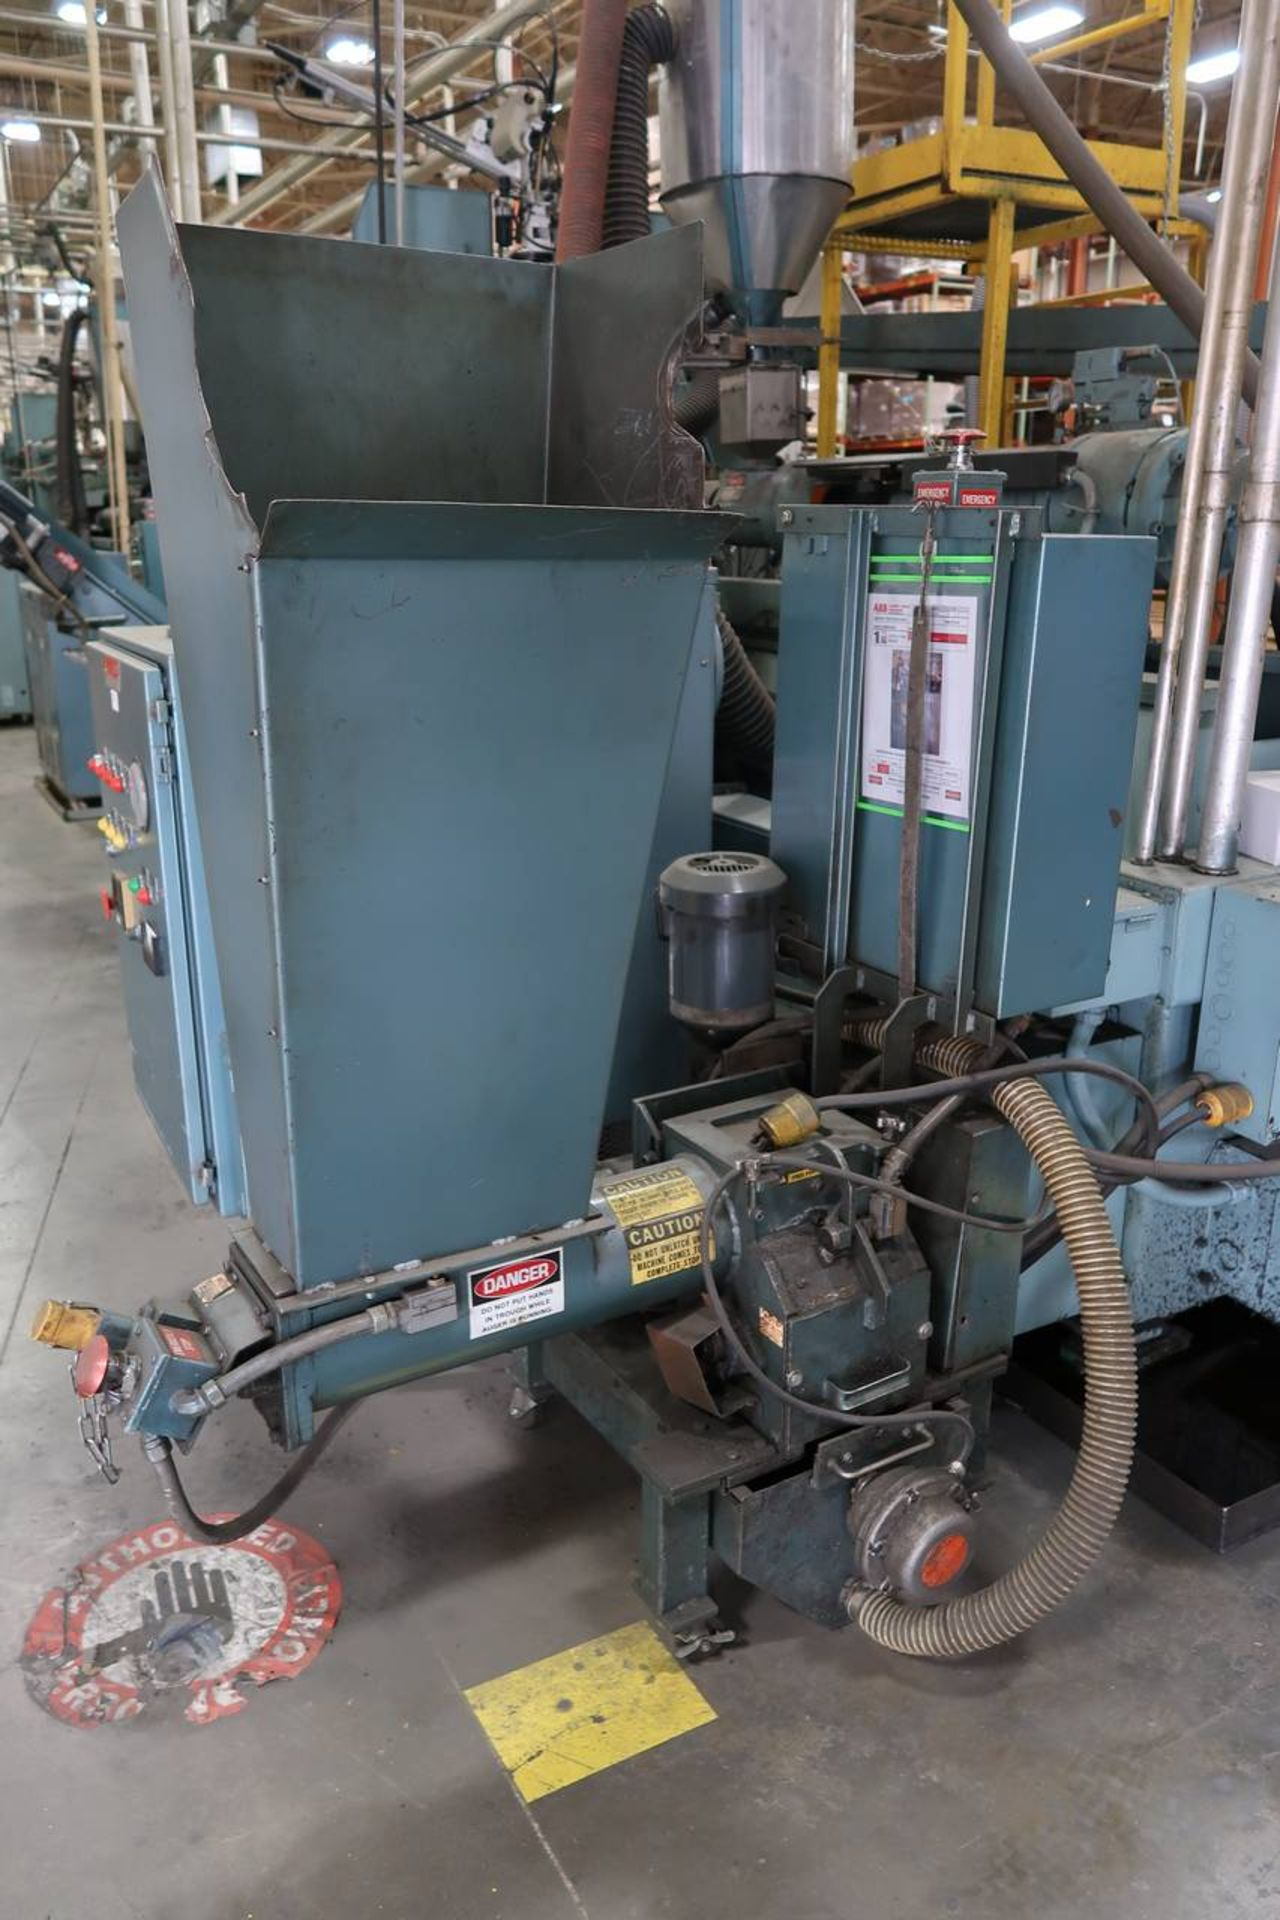 1986 HPM 400-TP-20 400-Ton Thermo Plastic Injection Molding Press - Image 24 of 40